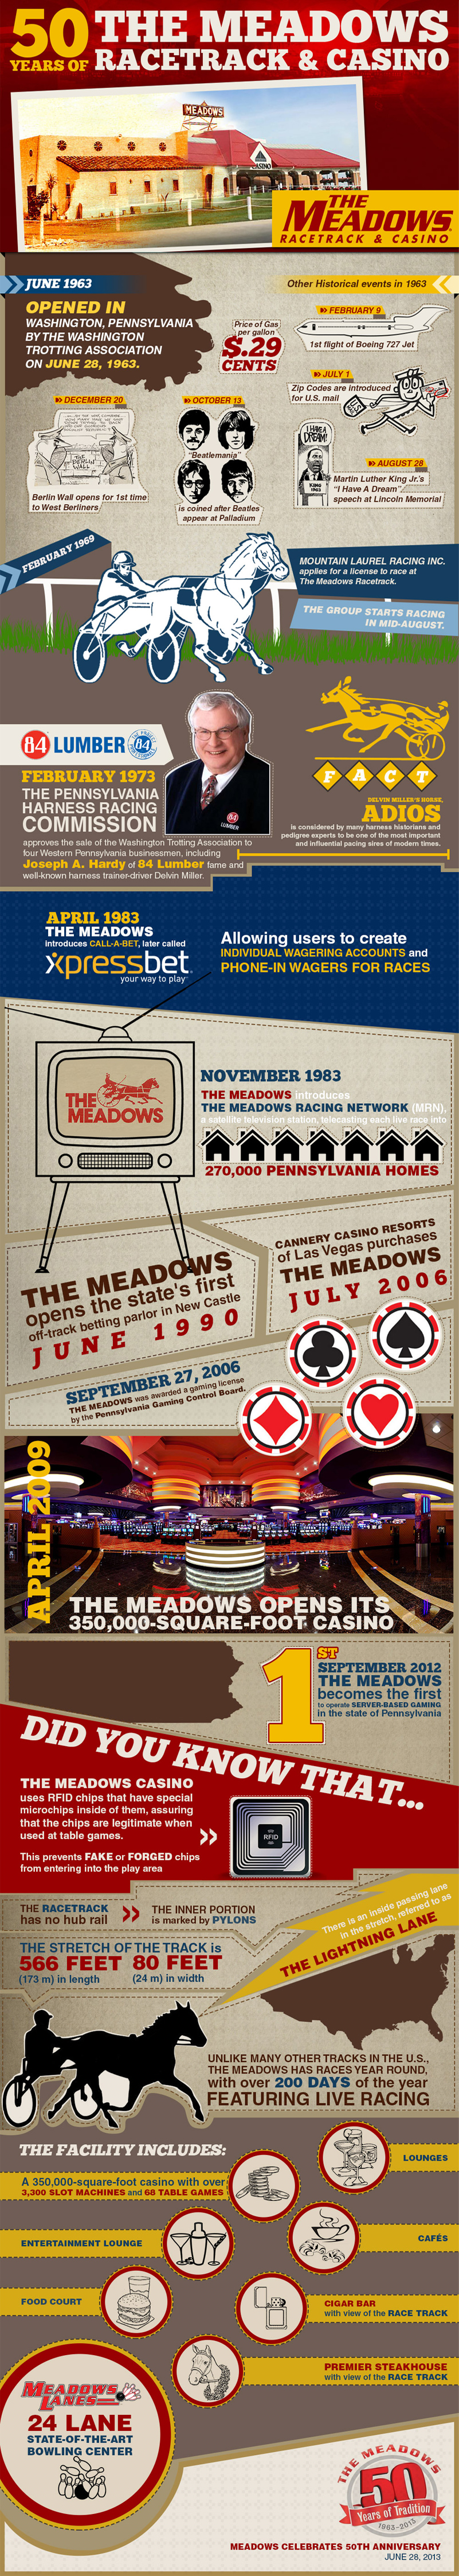 50 Years of the Meadows Racetrack & Casino